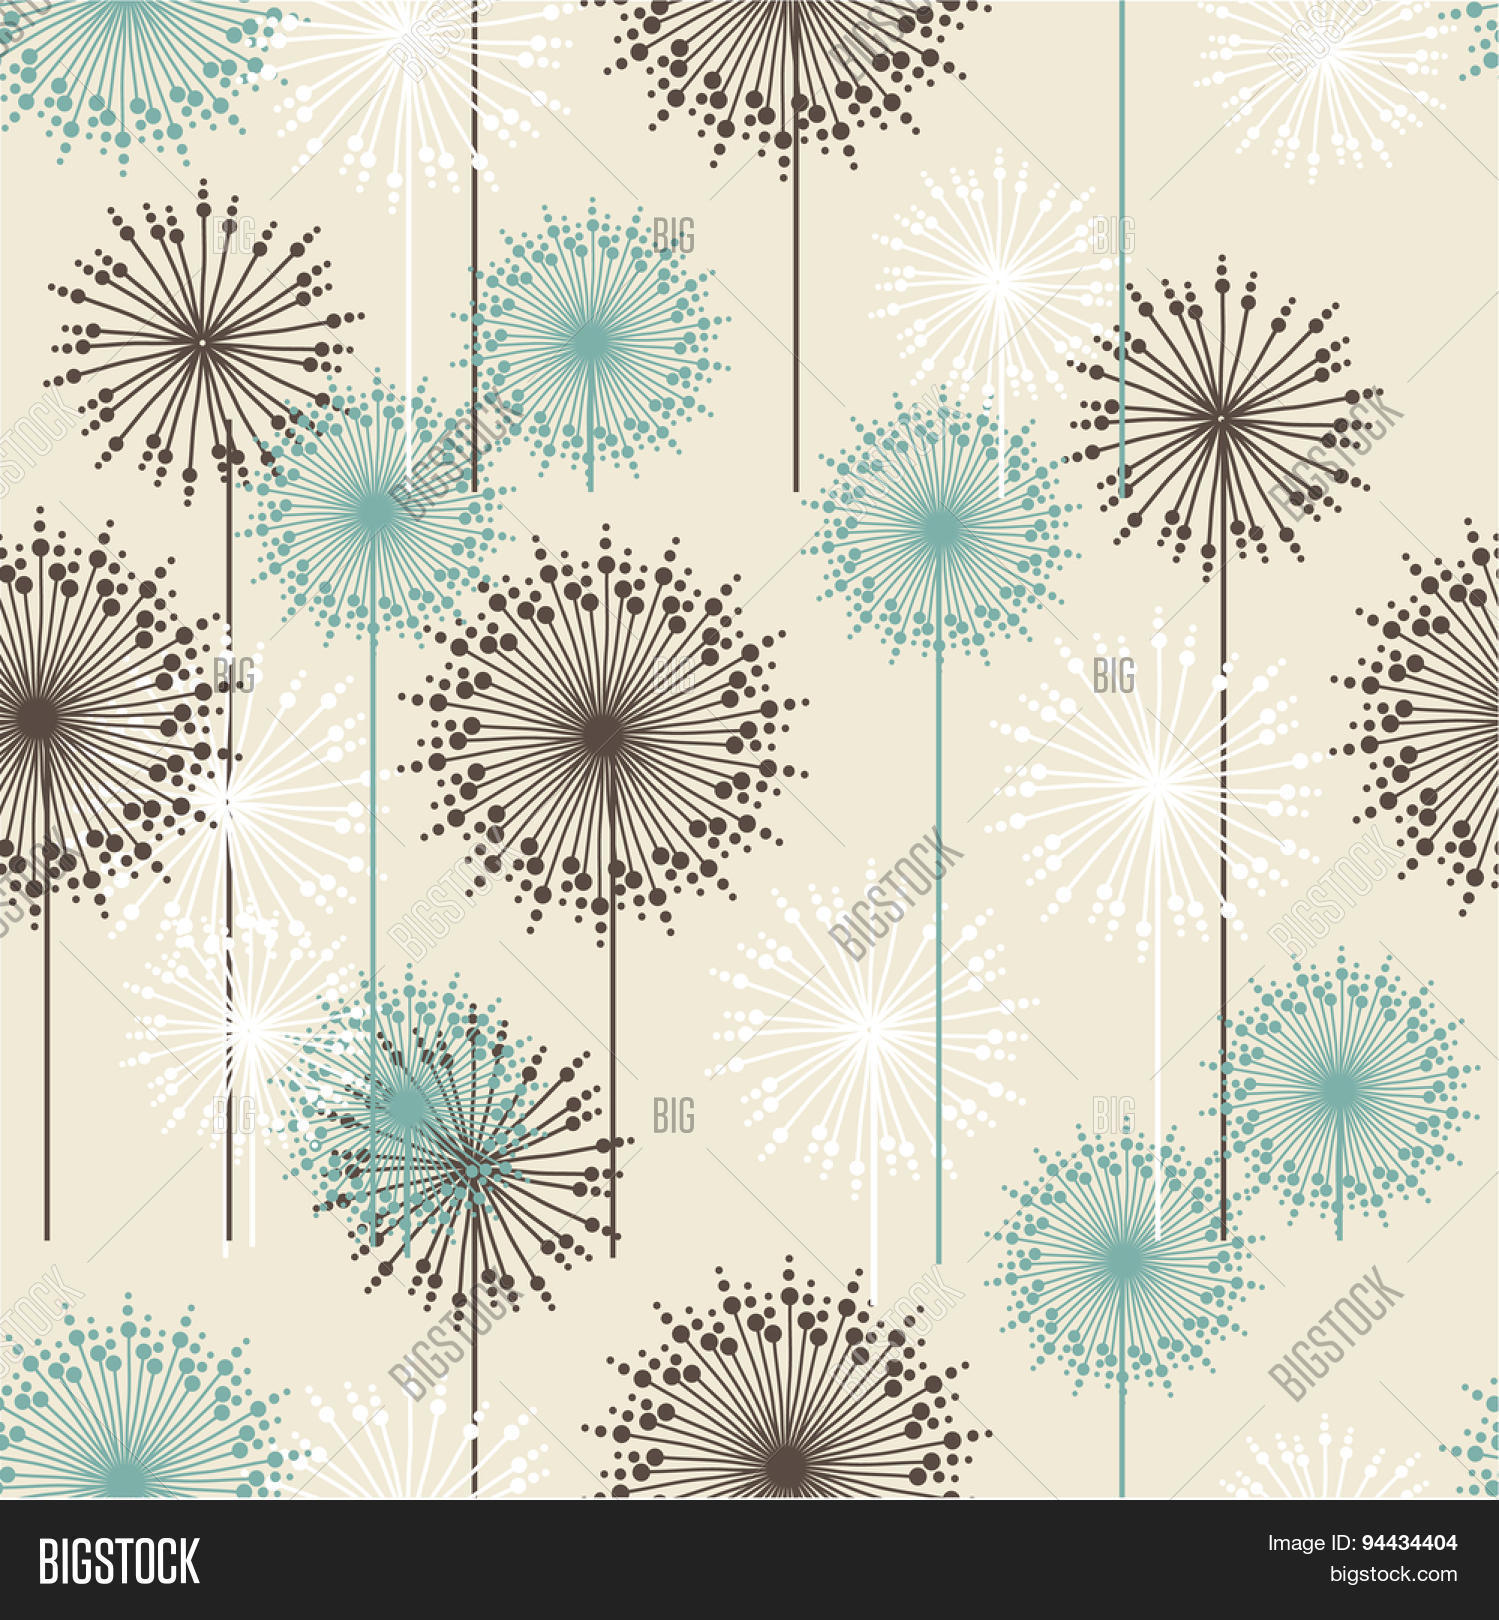 Vintage Floral Pattern Image Photo Free Trial Bigstock